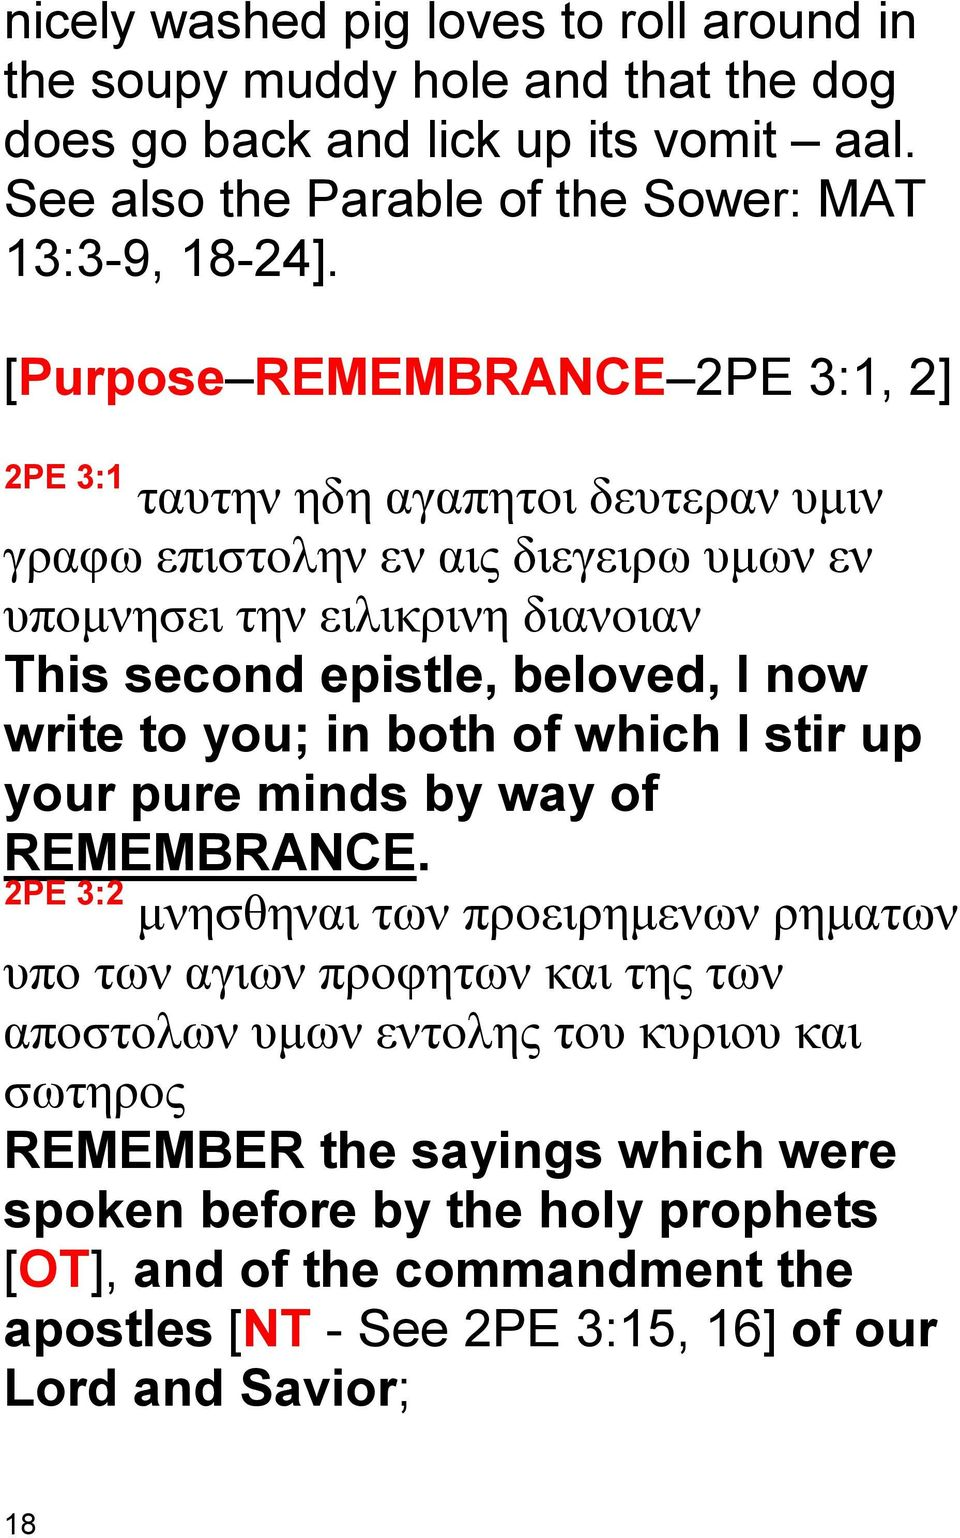 now write to you; in both of which I stir up your pure minds by way of REMEMBRANCE.